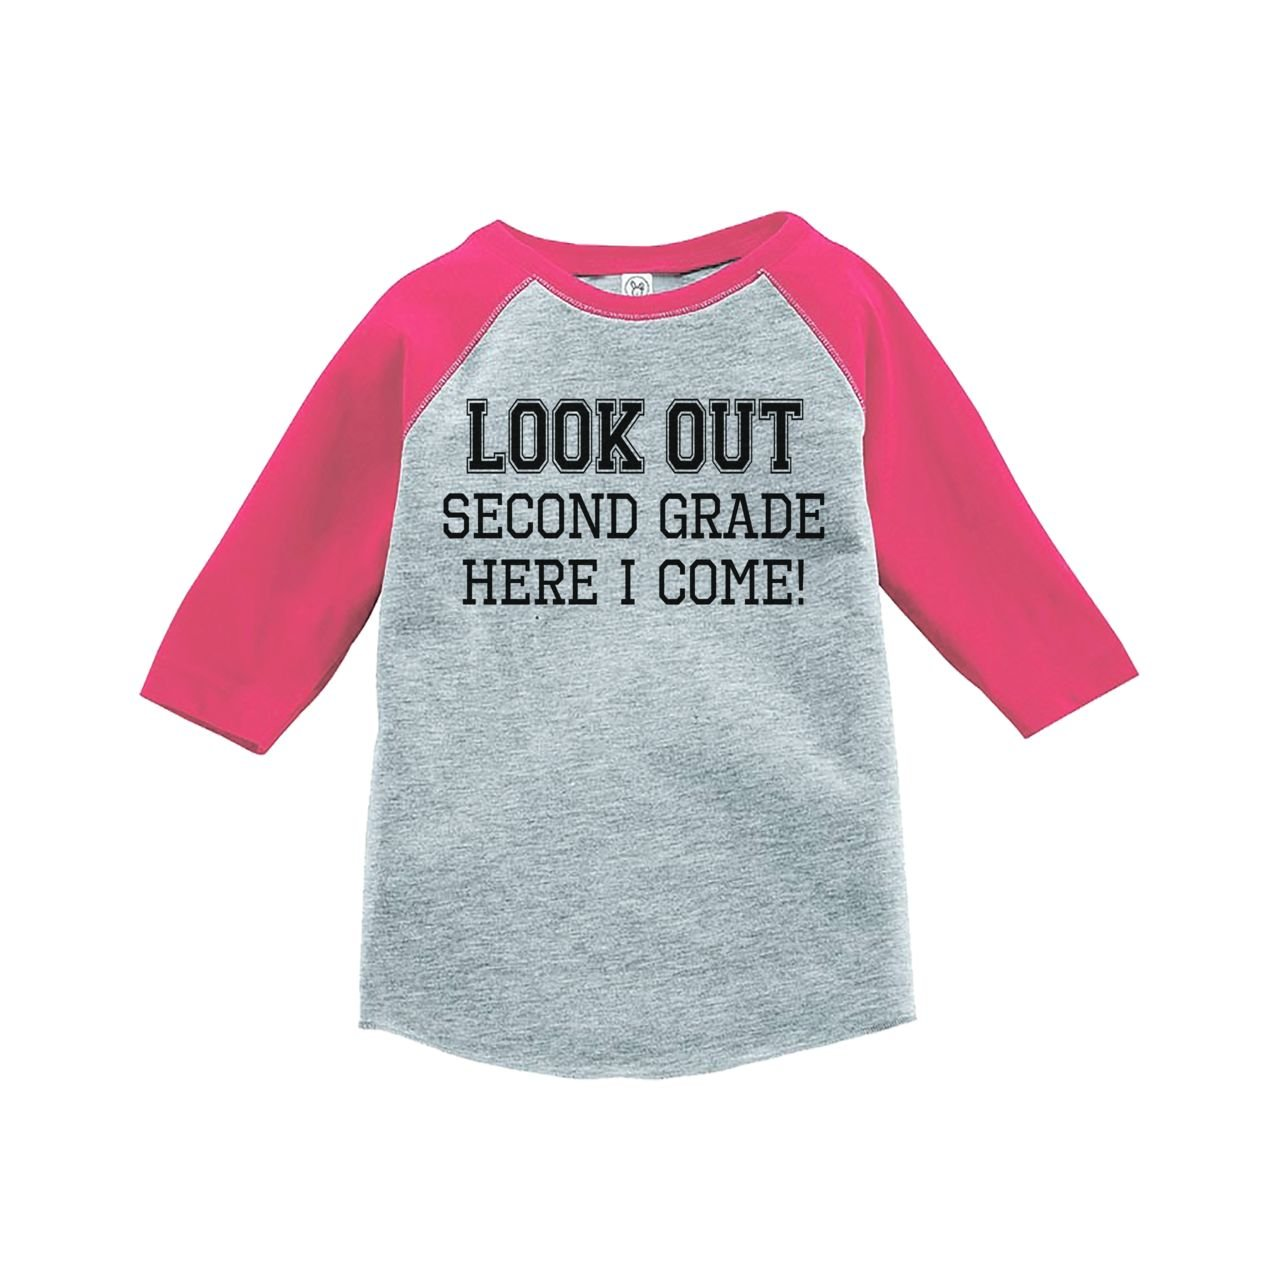 Custom Party Shop Girls Look Out 2nd Grade Pink Baseball Tee